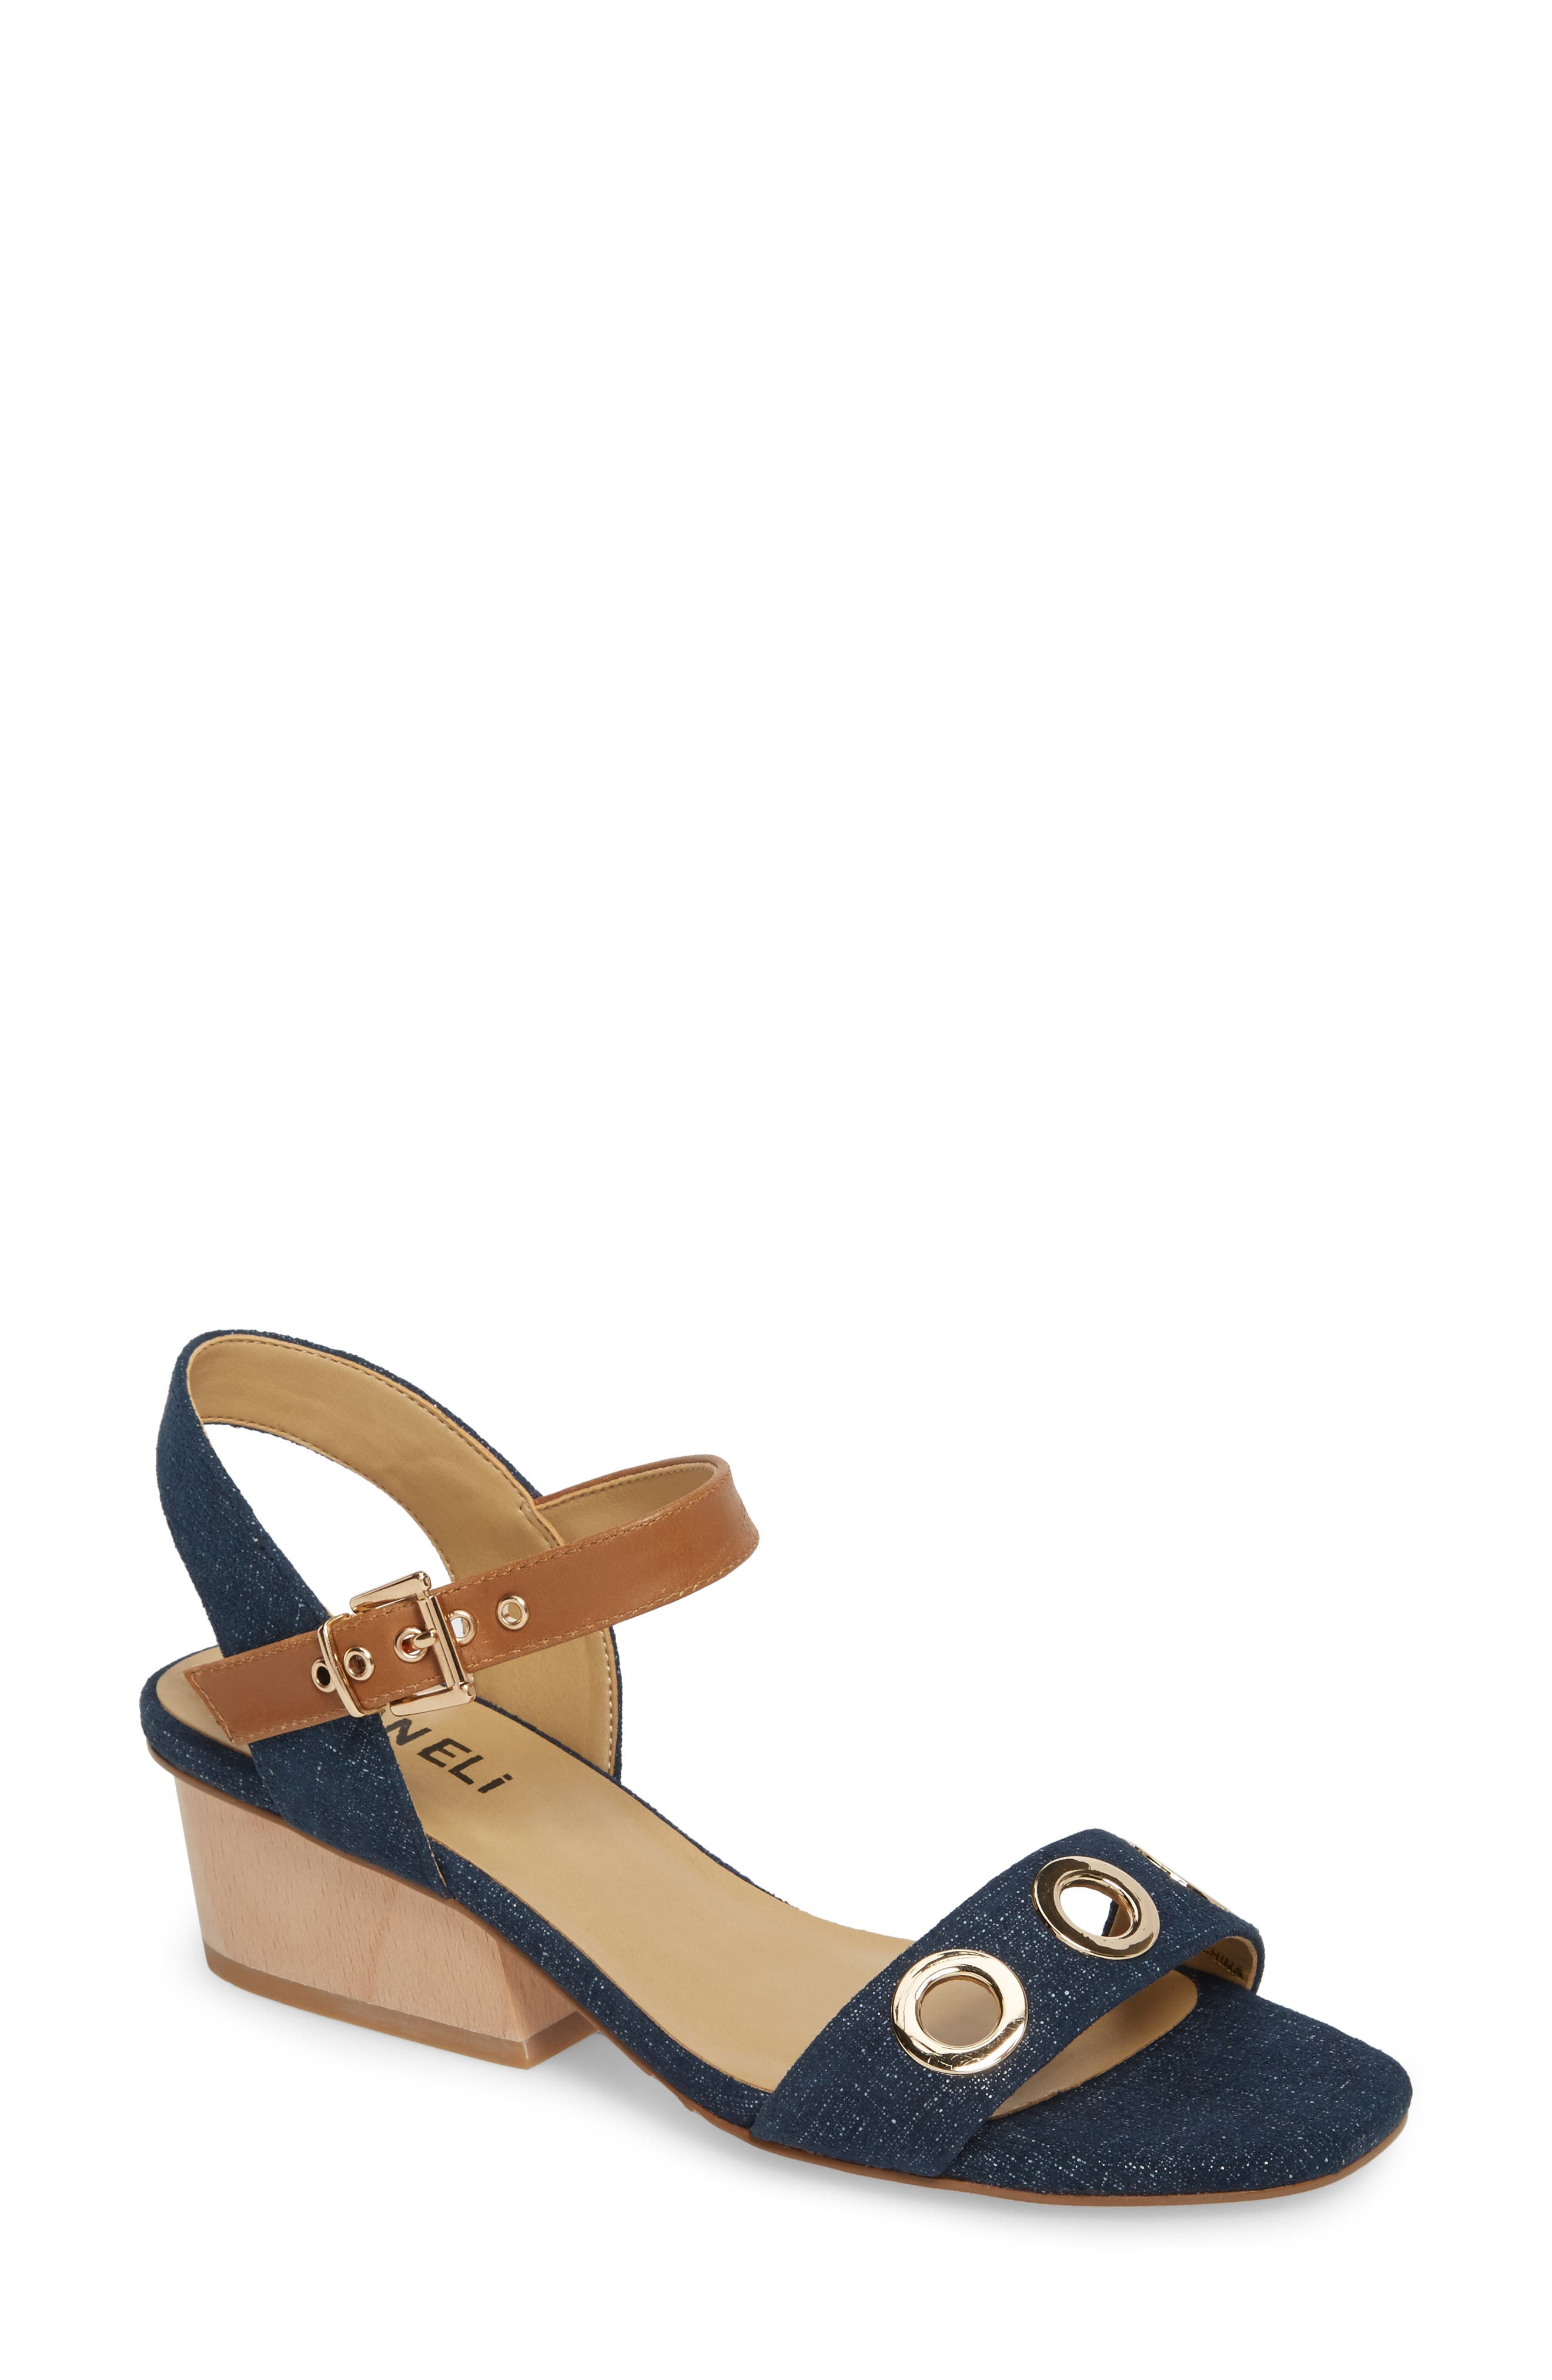 Chaddy Sandal,                             Main thumbnail 1, color,                             Jeans Printed Suede